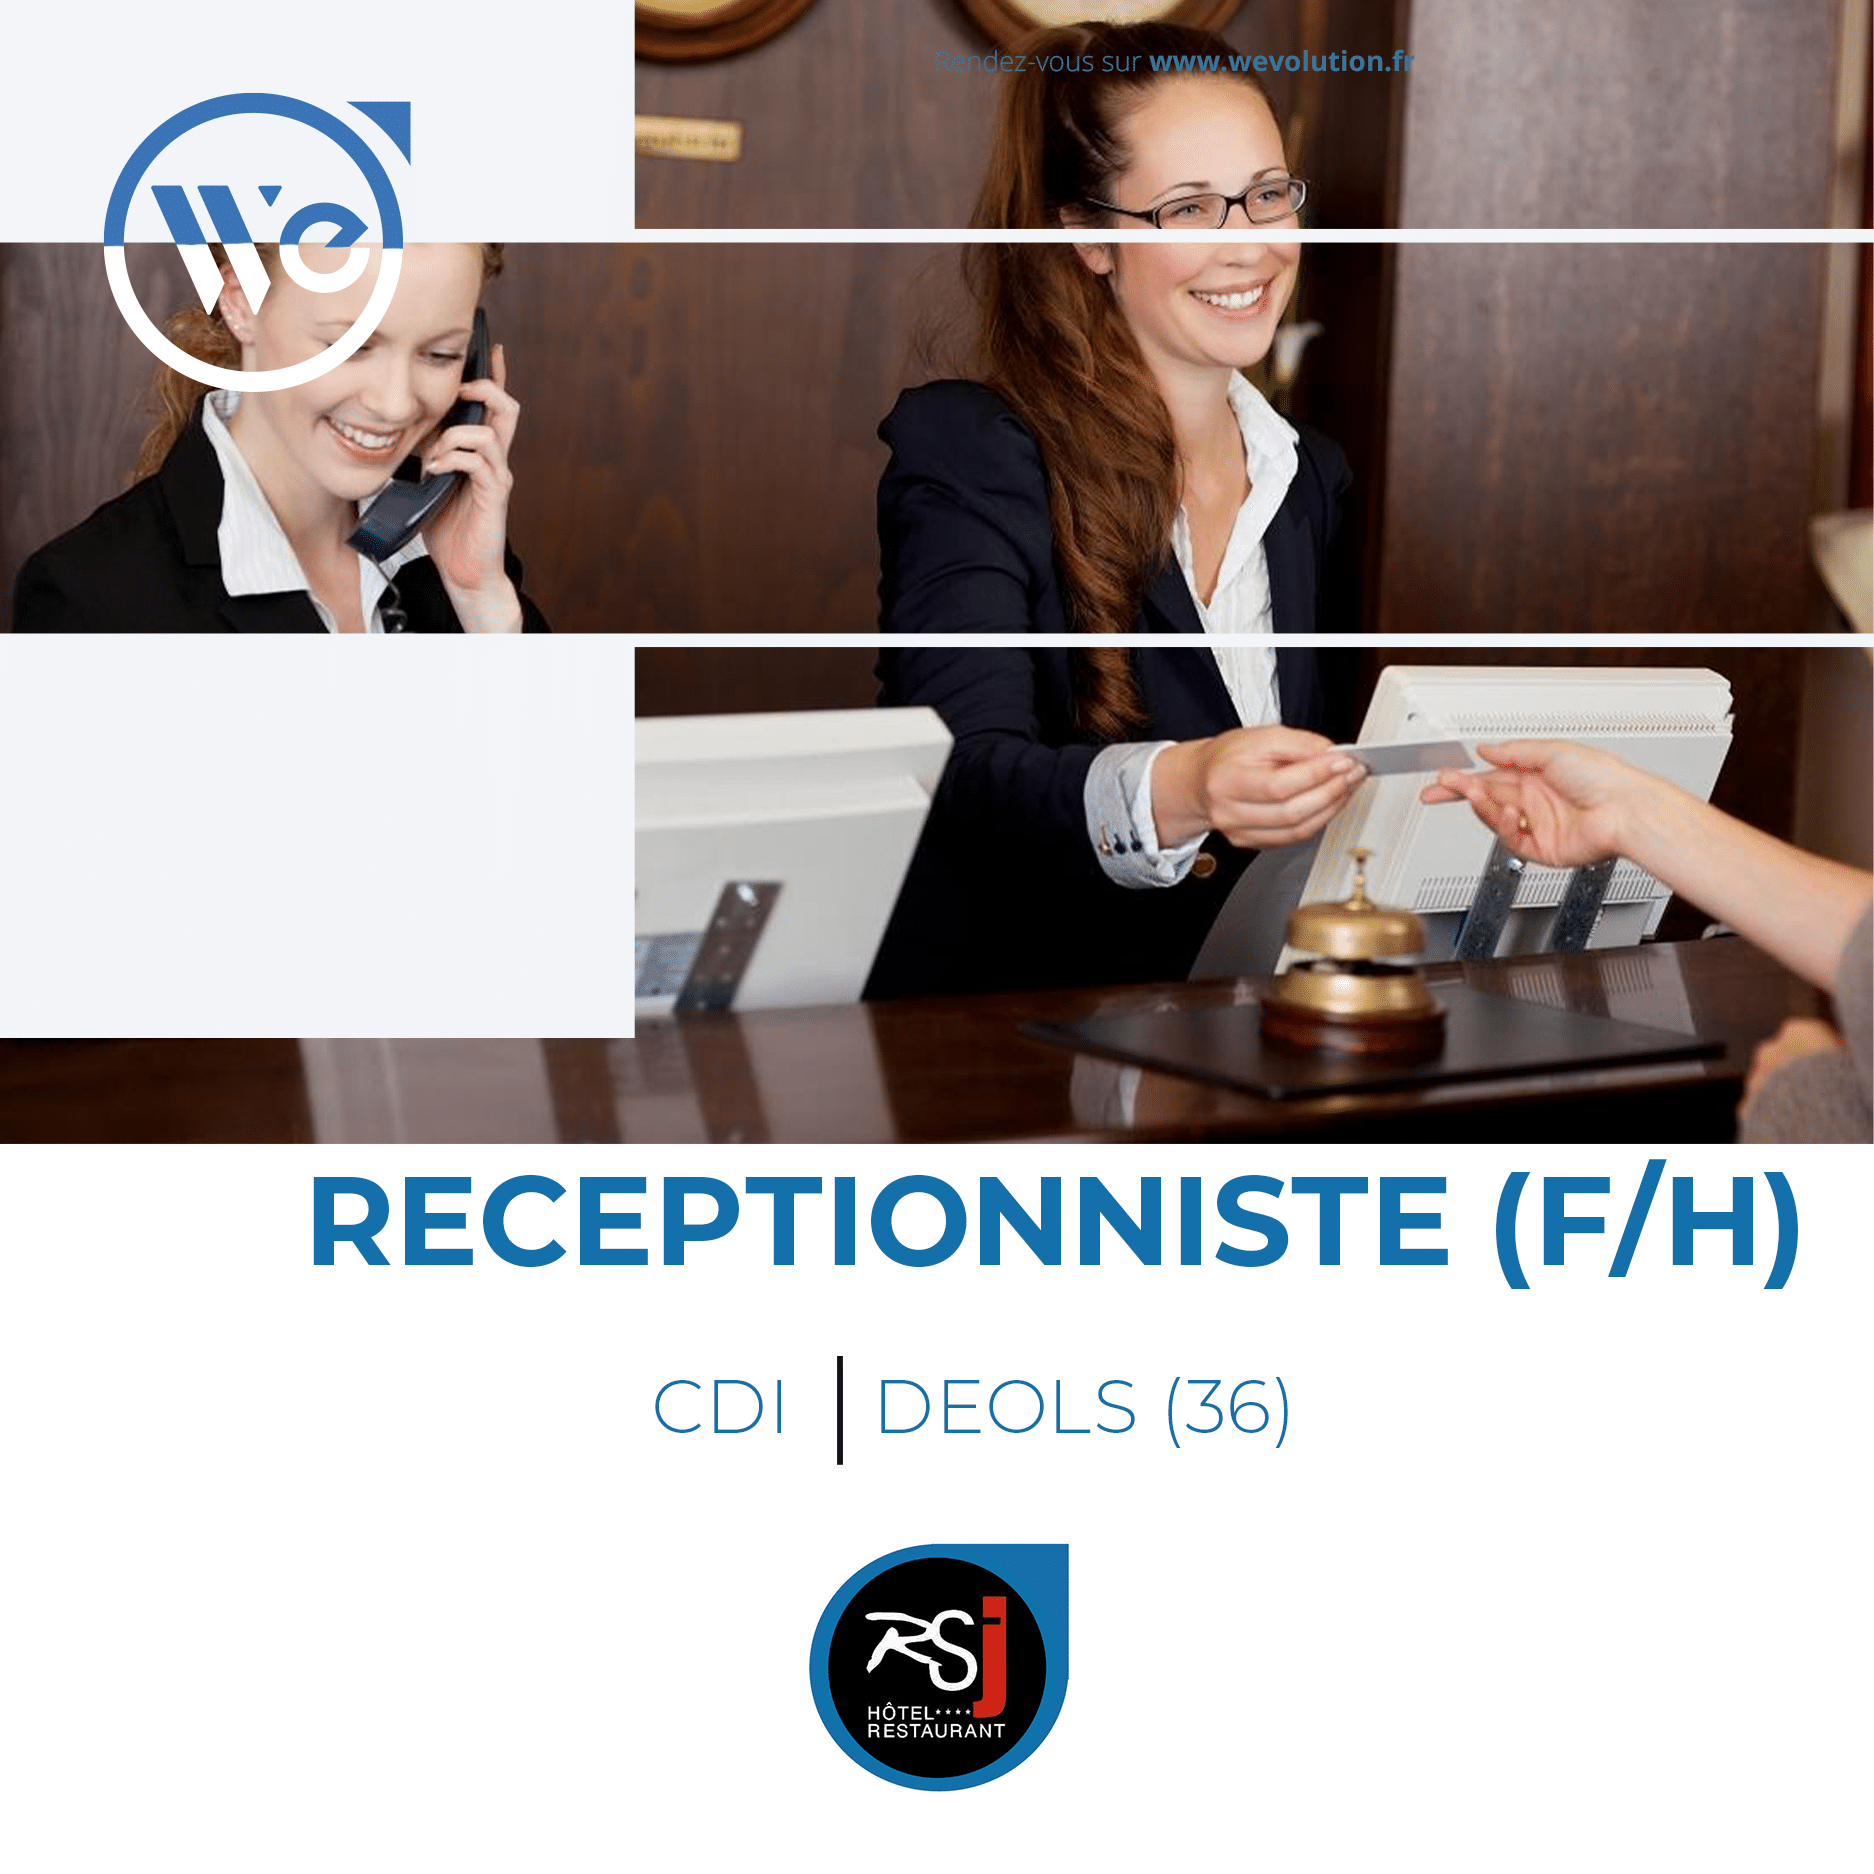 RECEPTIONNISTE (F/H)